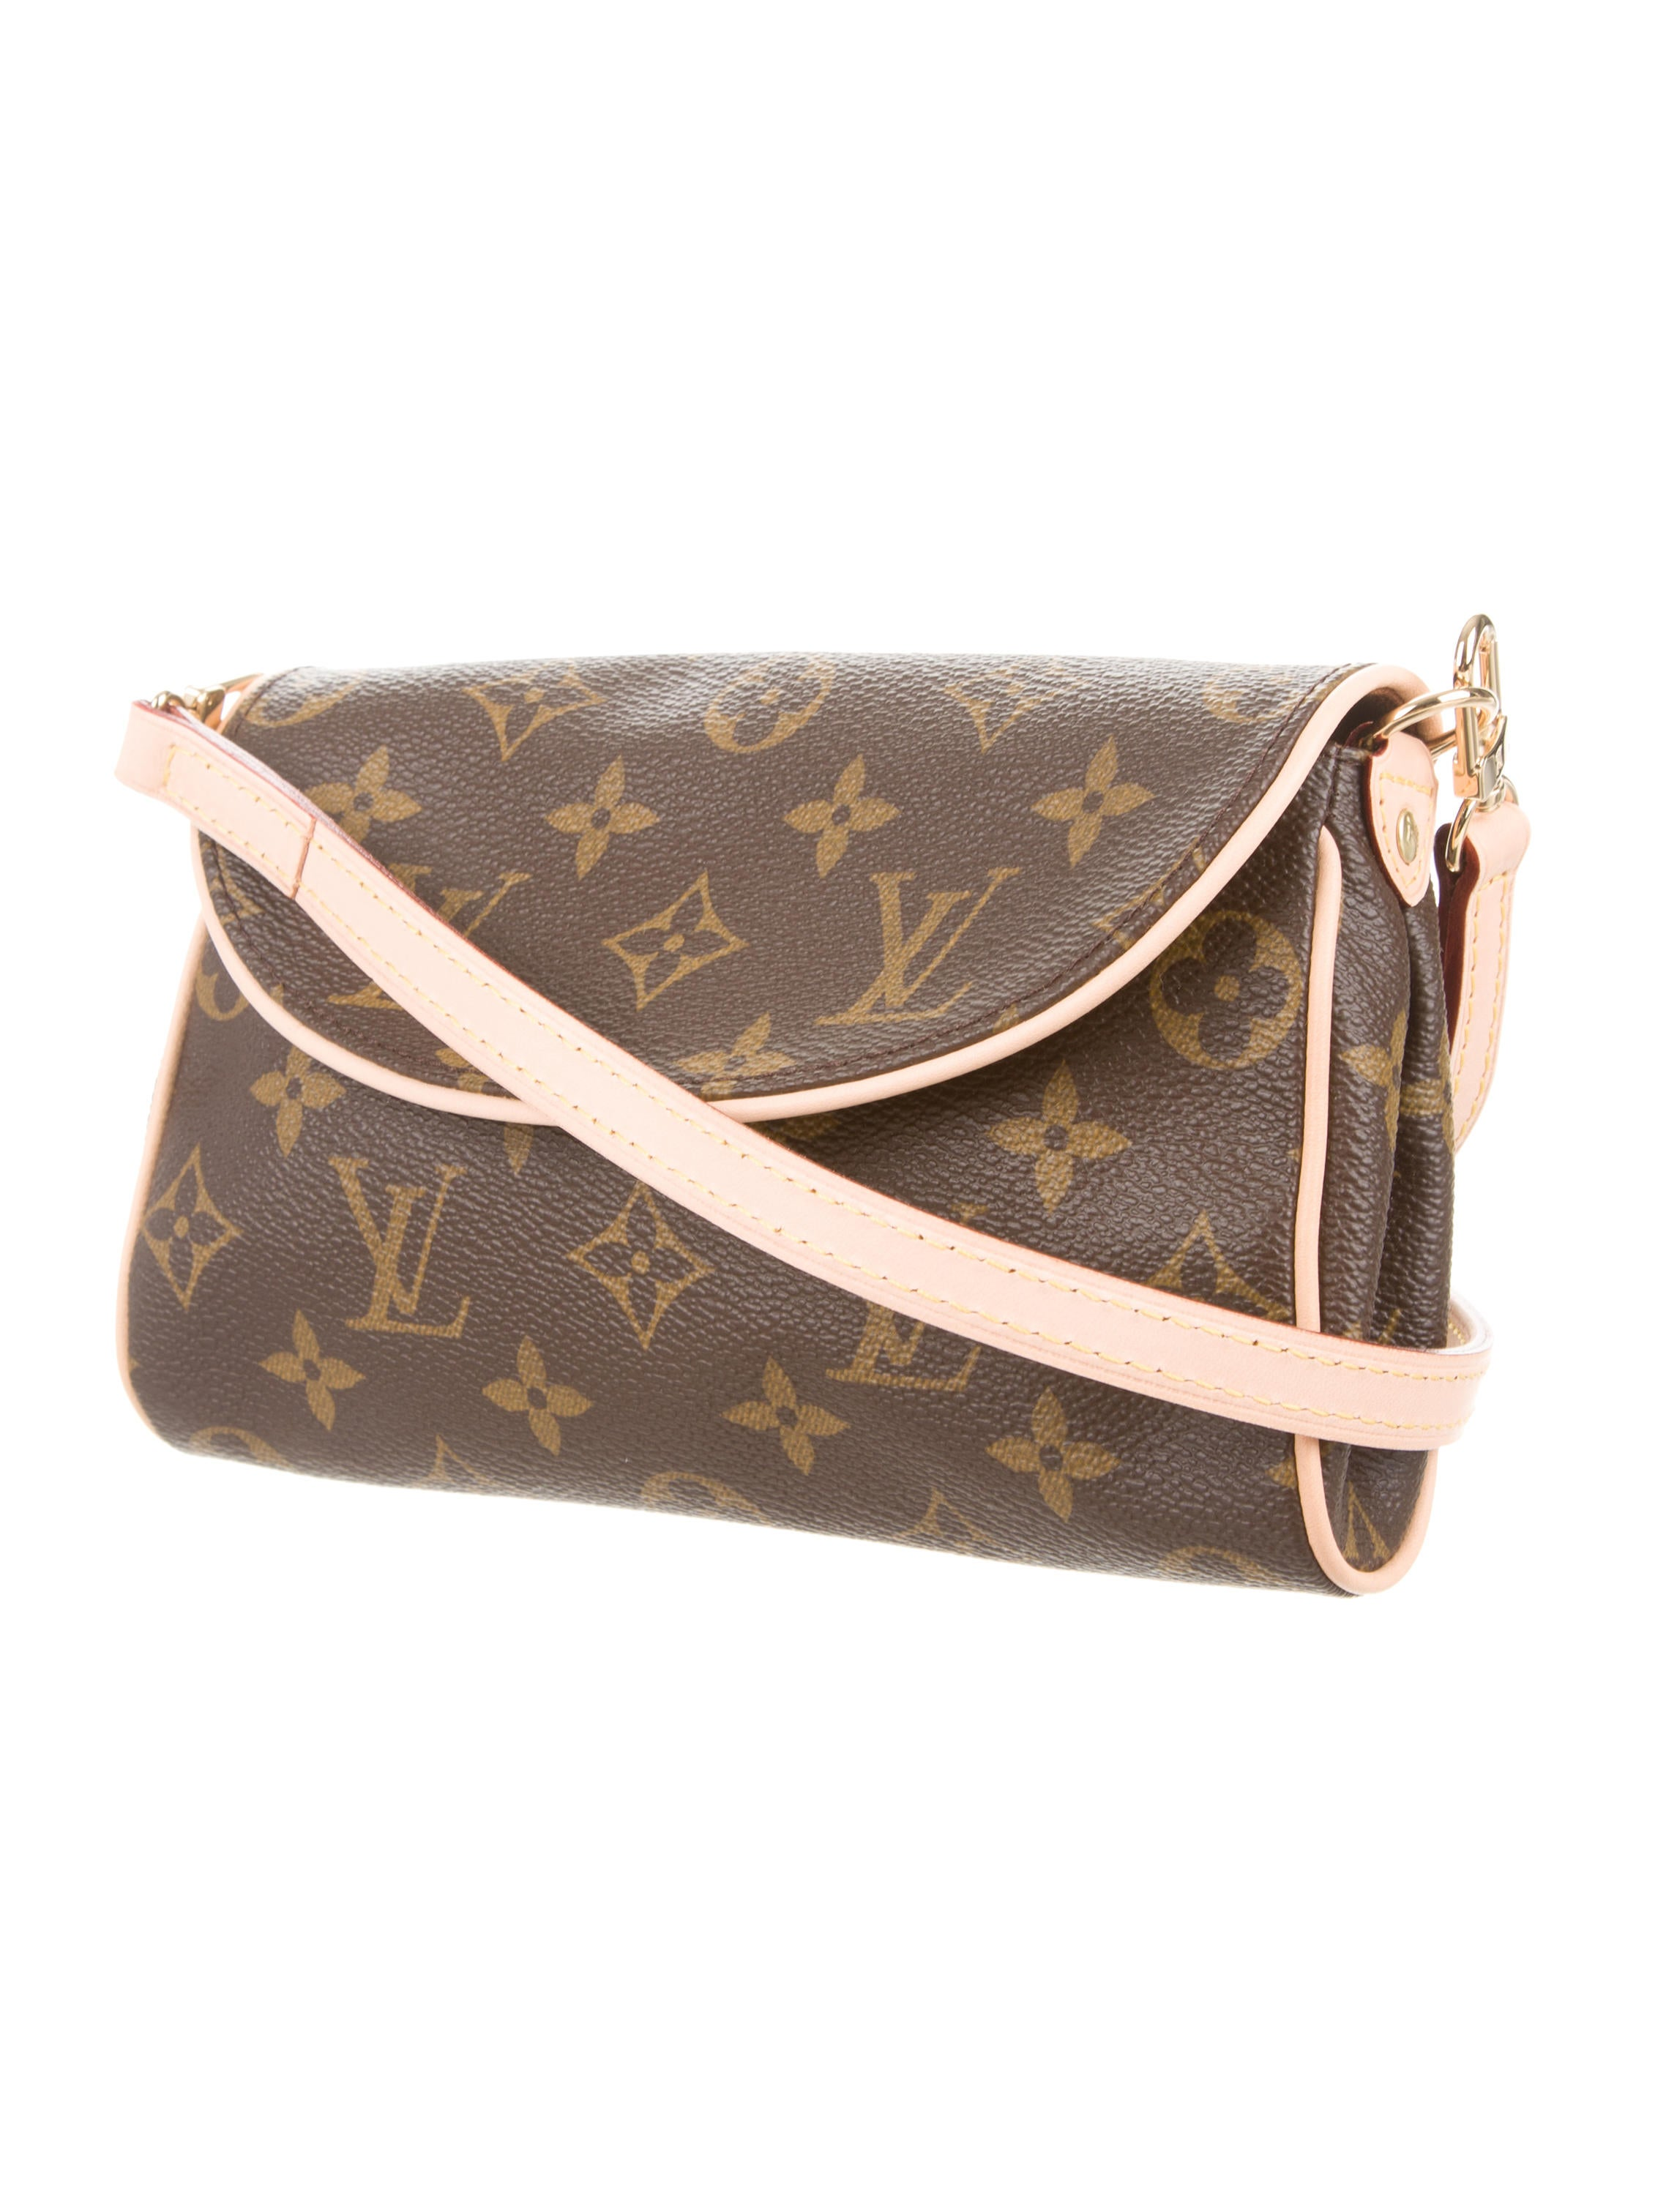 Monogram Pochette Friendly 2-Way Bag